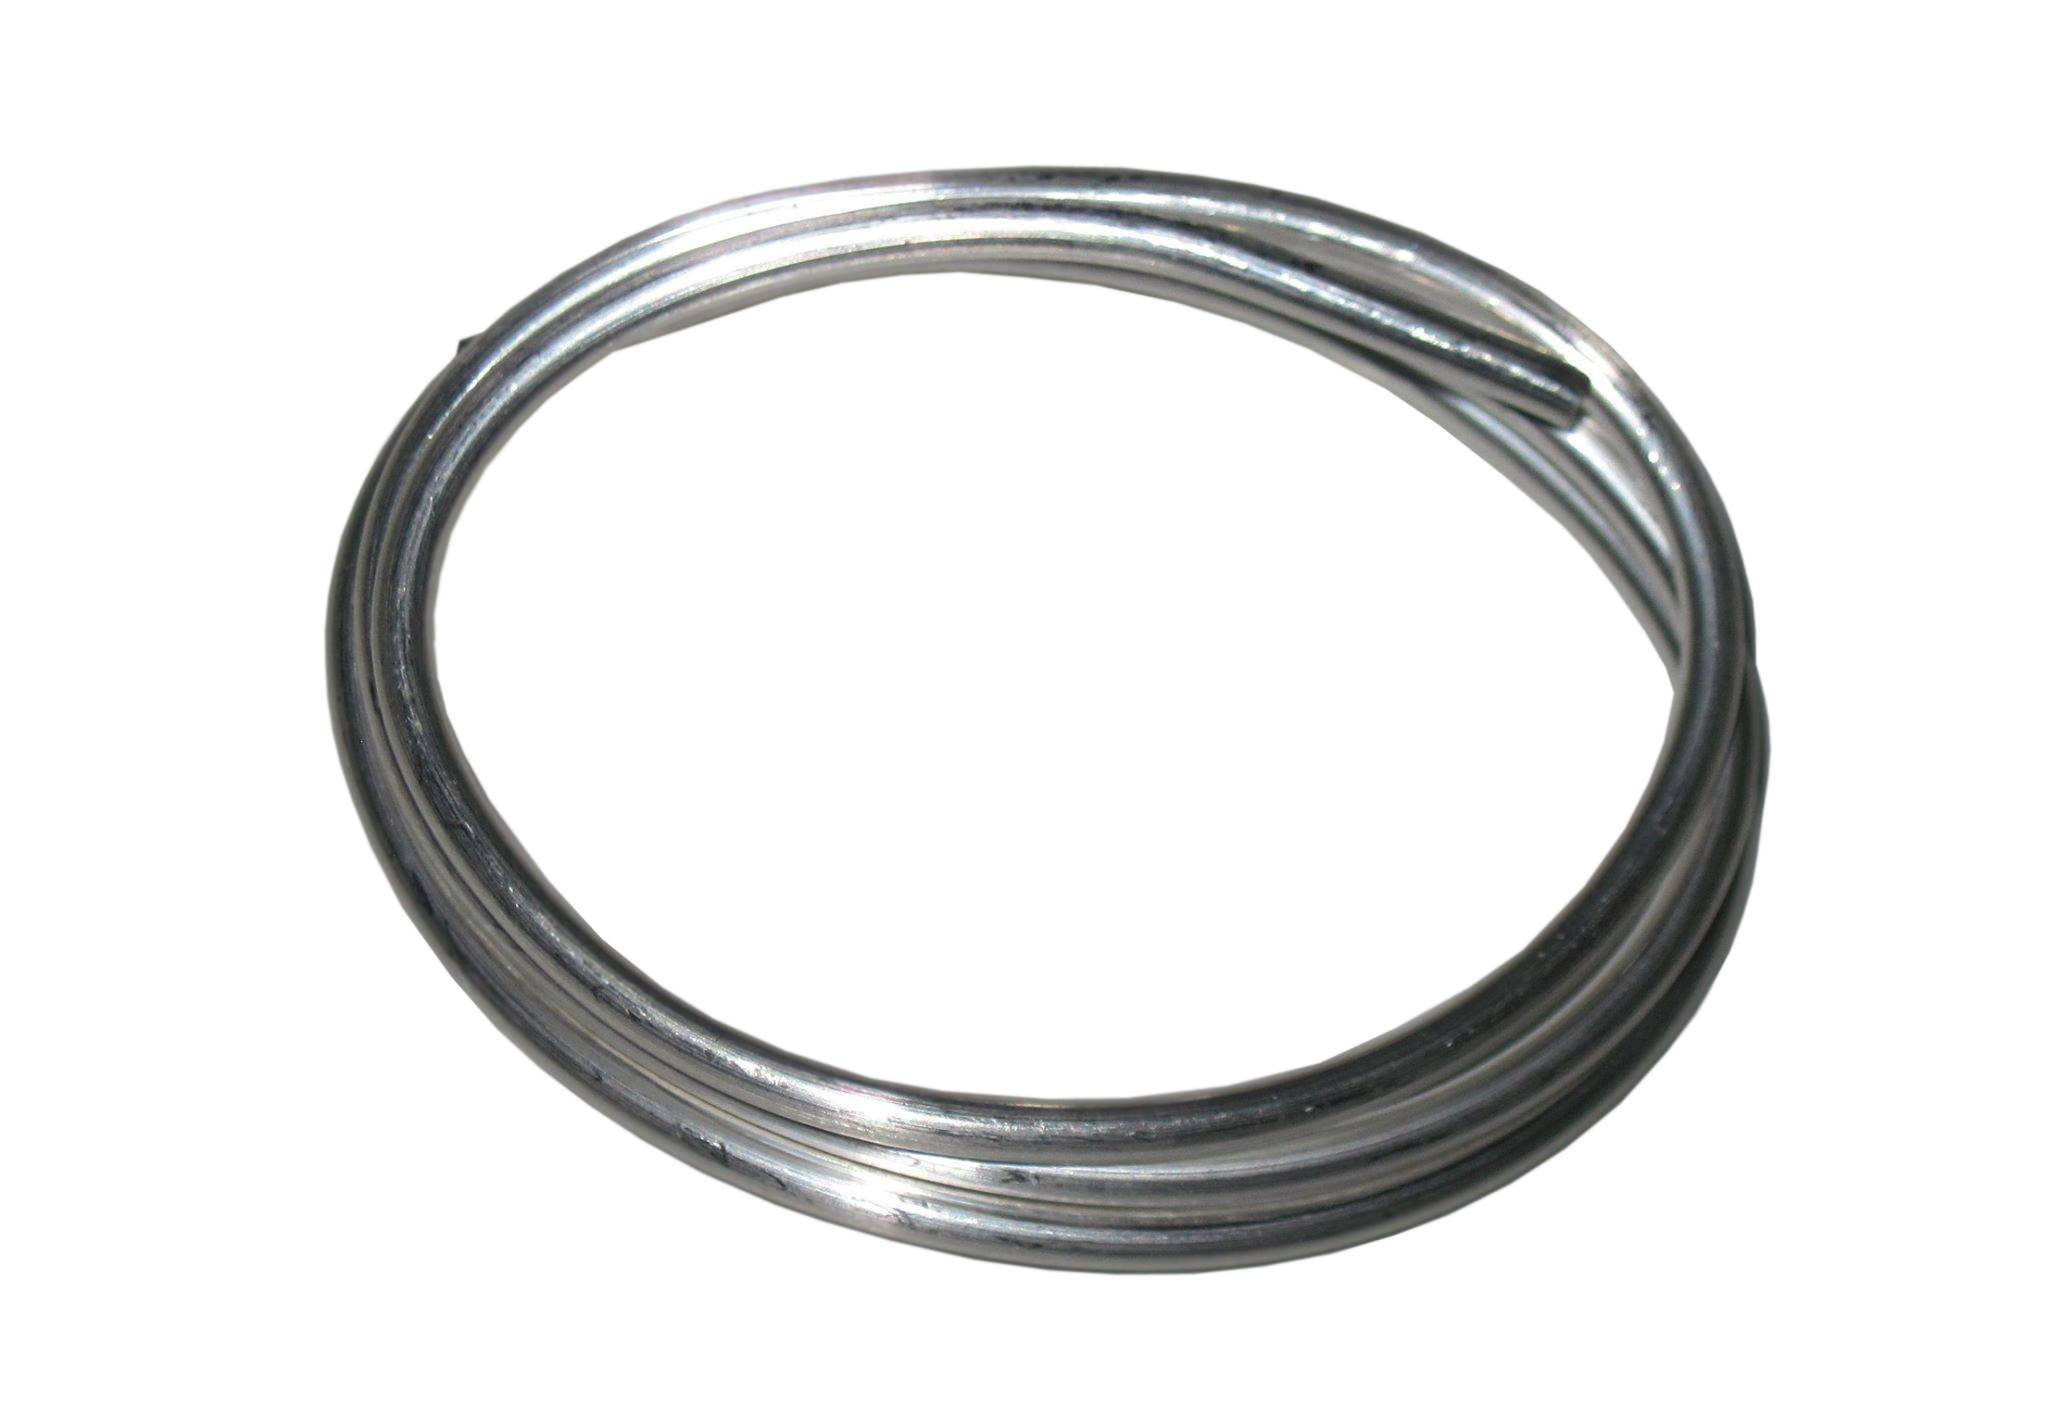 Atlasnova Pure Silver Wire 9999 (Not 999) 10 gauge 1oz 20 Inches